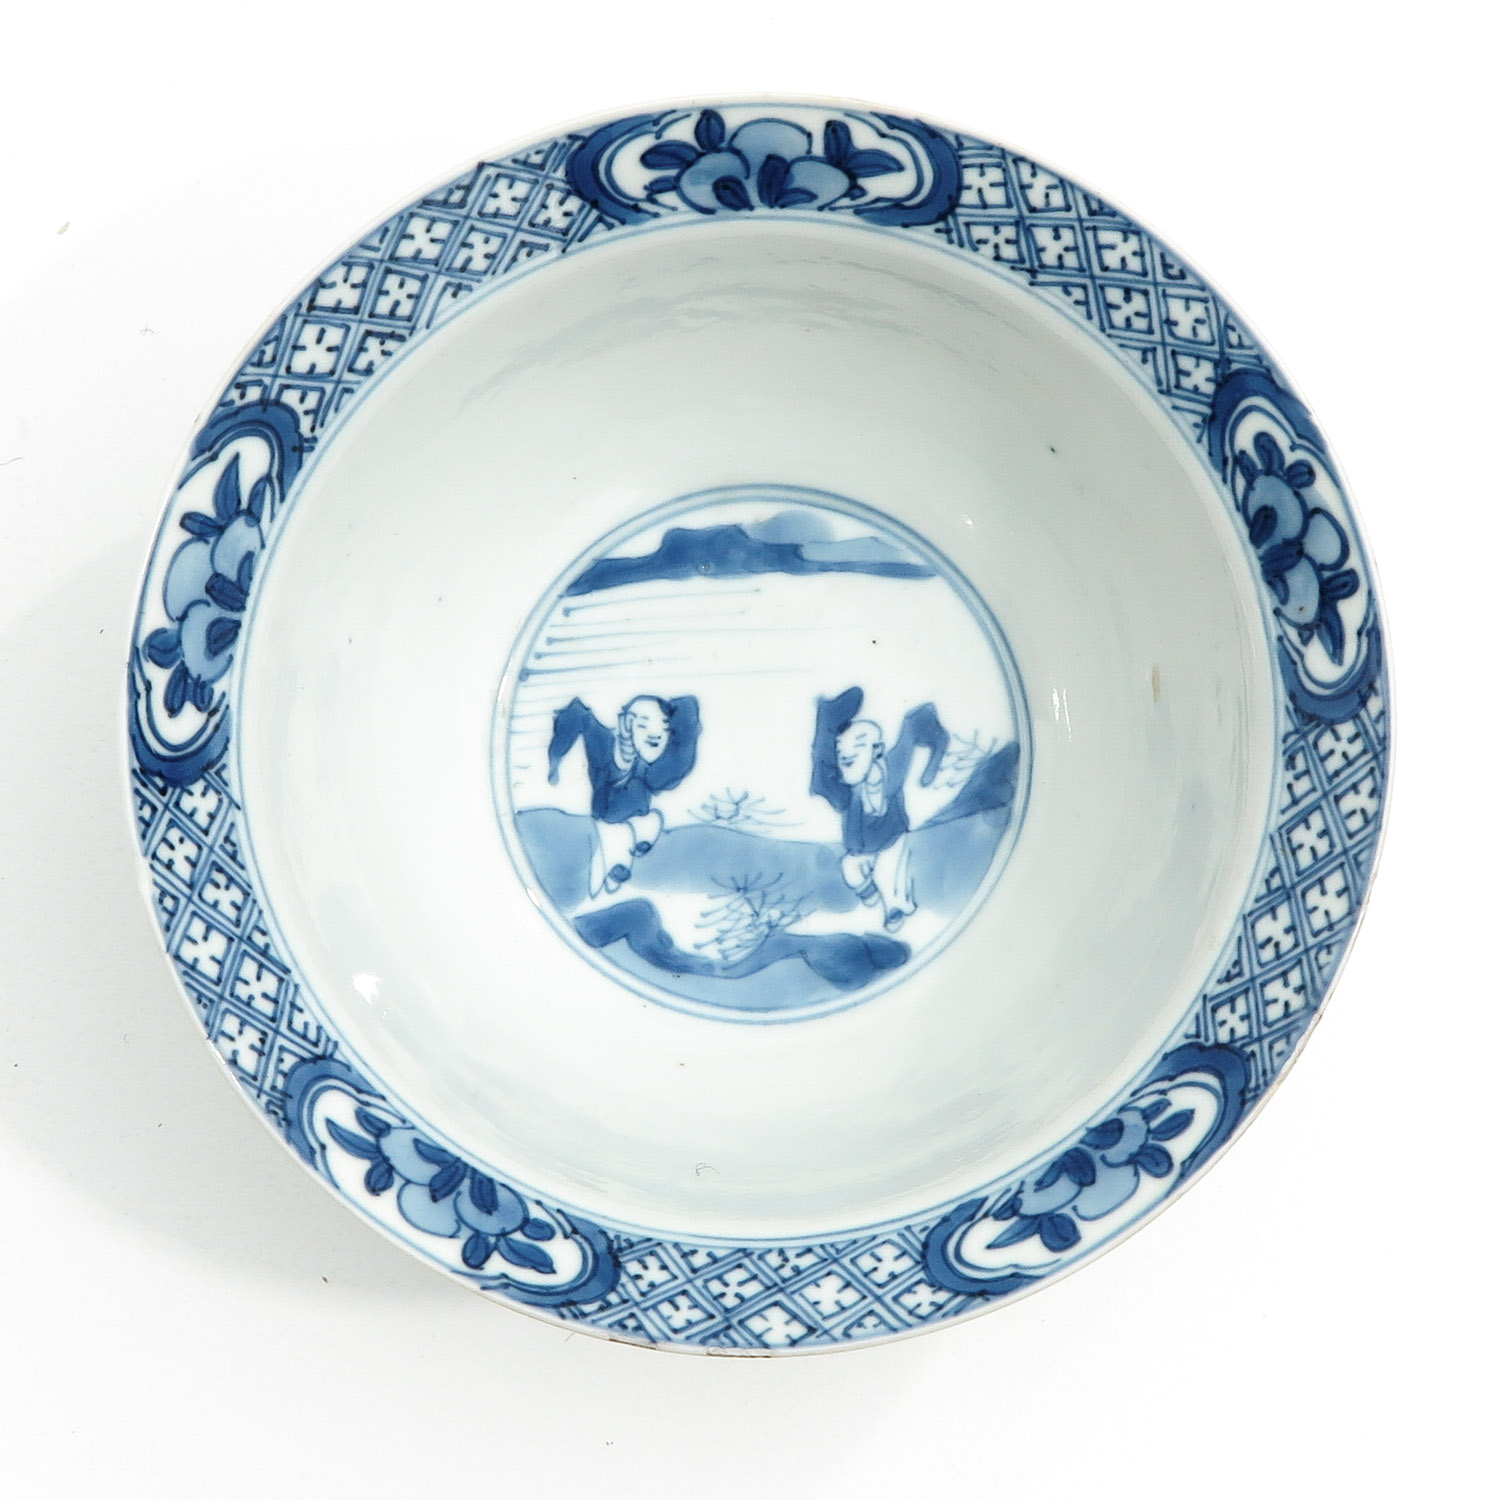 A Blue and White Bowl - Image 5 of 10